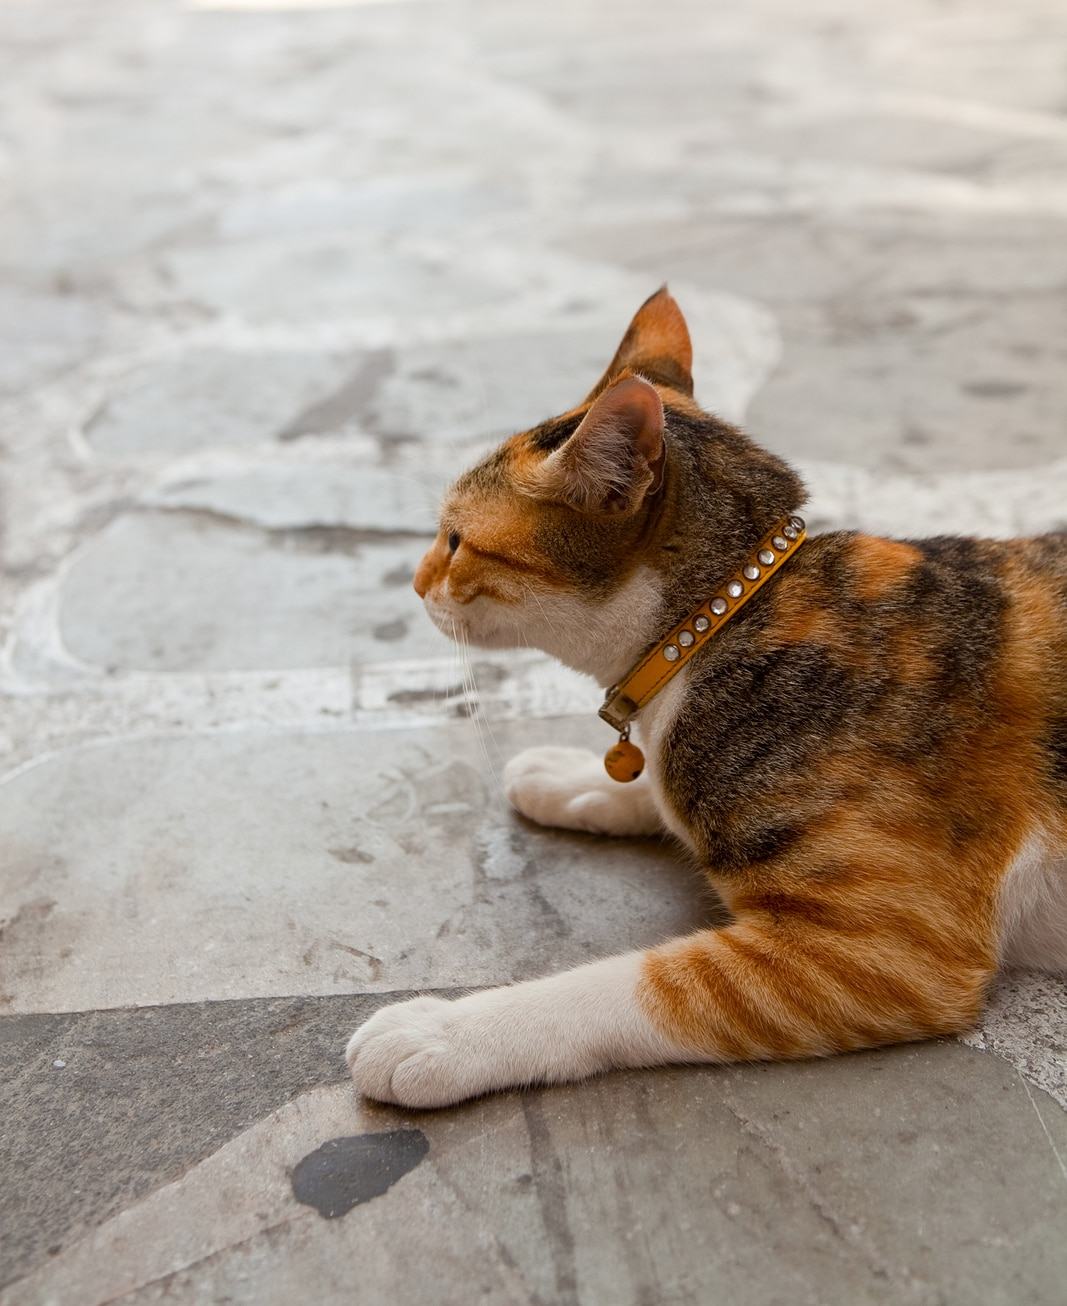 Orange cat lying on a rock-tiled floor